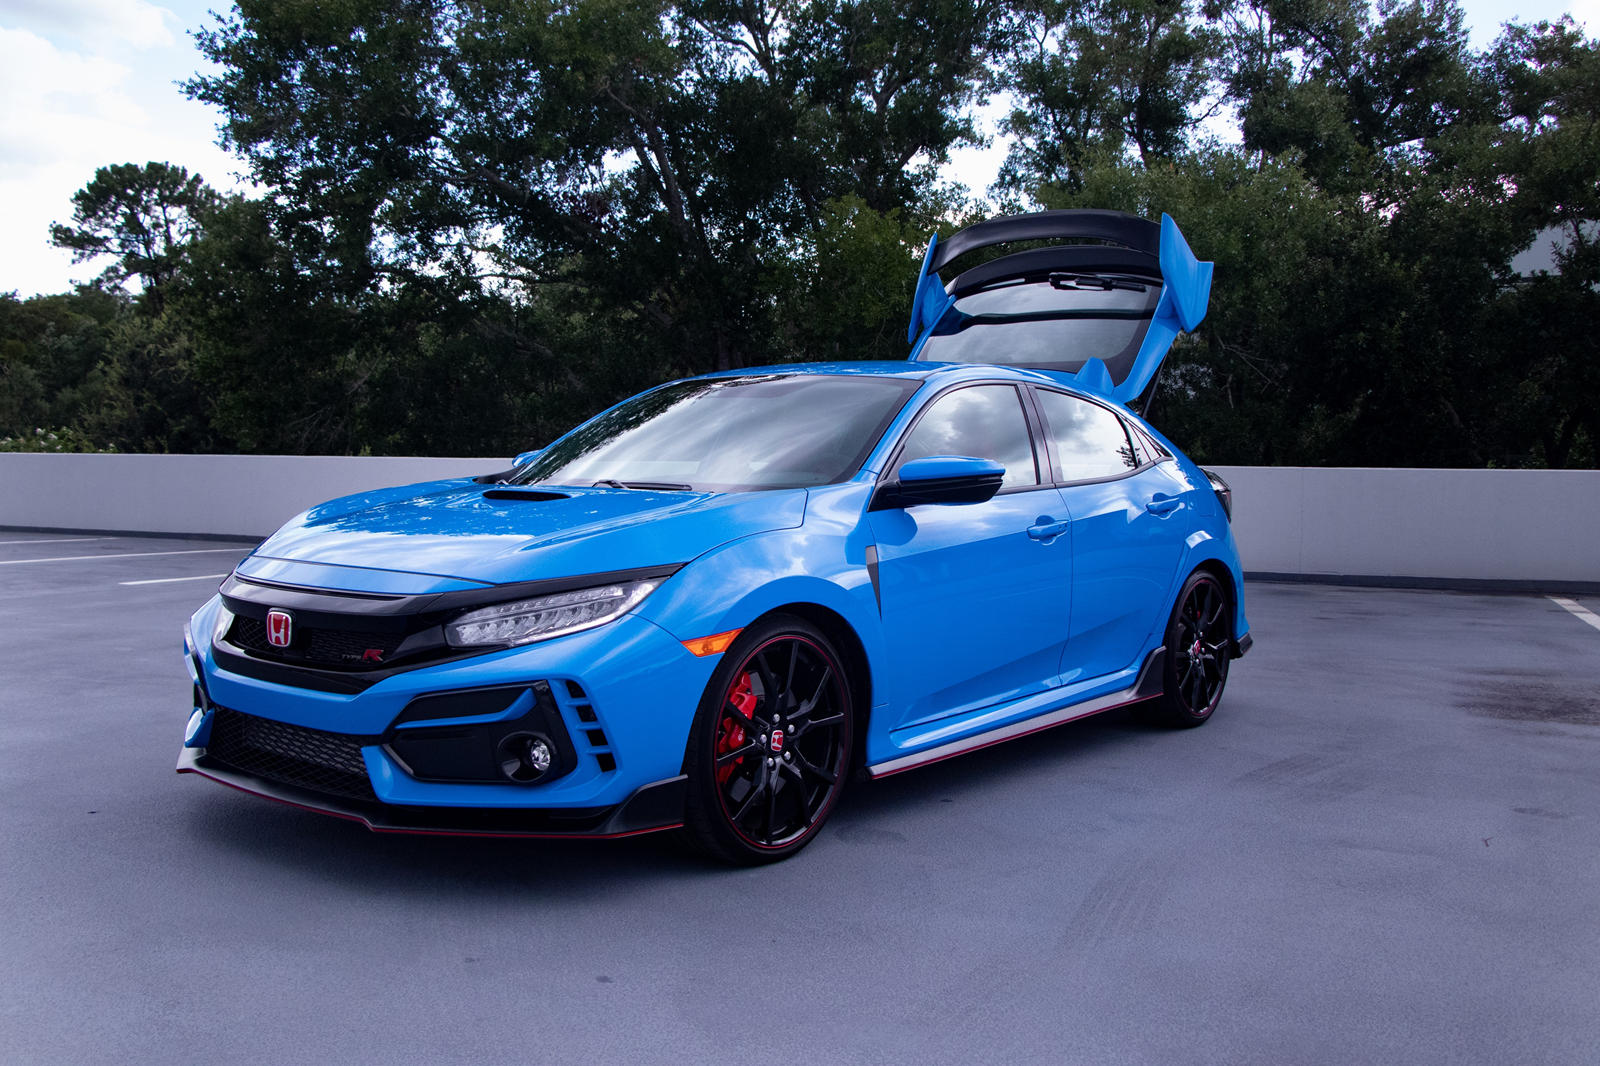 2020 Honda Civic Type R Review Trims Specs Price New Interior Features Exterior Design And Specifications Carbuzz